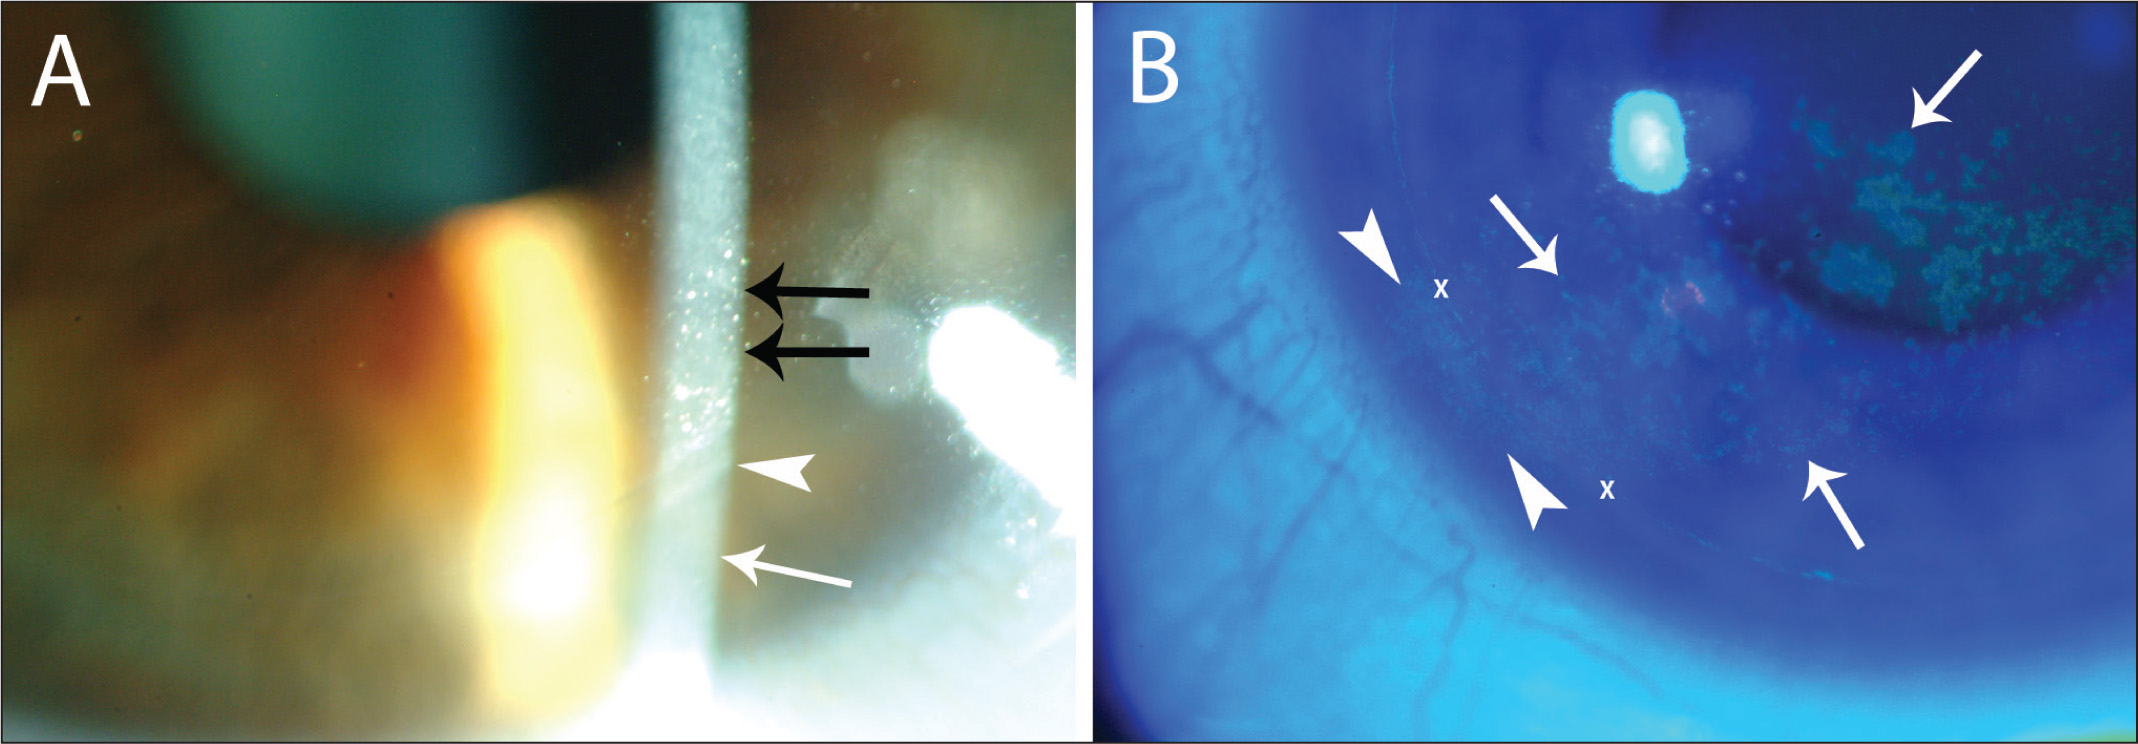 Slit-lamp photographs of corneas with refractive surgery-induced dry eye at 1 month after LASIK (original magnification ×40). (A) Corneal epitheliopathy (black arrows) limited to the flap area. Note that beyond the flap edge (white arrowhead), there are no punctate epithelial erosions of the epithelium outside of the flap (white arrow). (B) Another cornea with 3+ punctate epithelial erosions with fluorescein staining (arrows). Note the presence of punctate epithelial erosion in the peripheral cornea (arrowheads) crossing the flap edges (X).